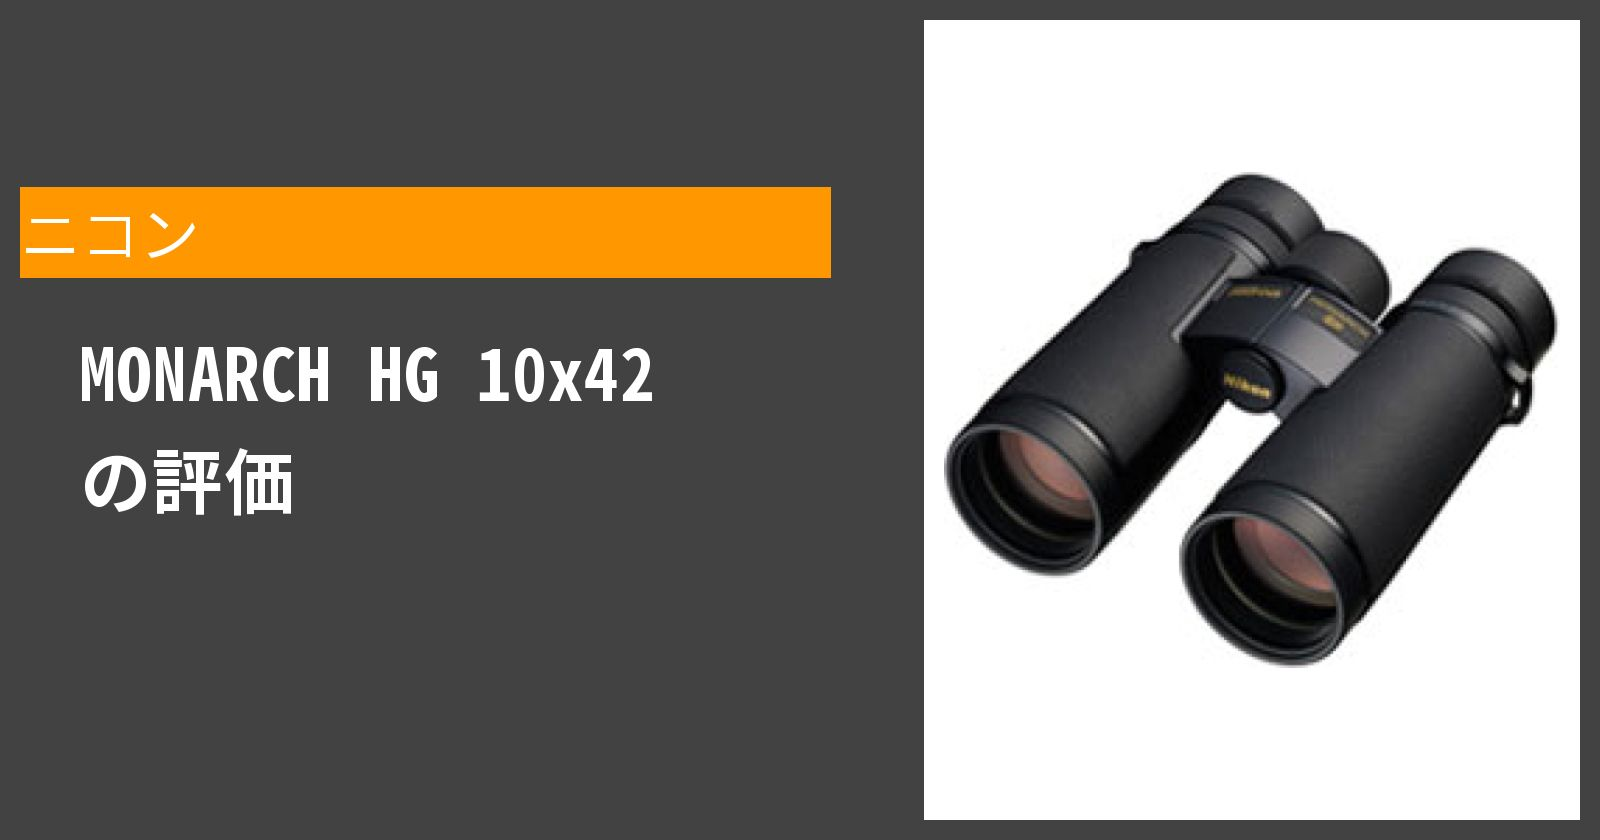 MONARCH HG 10x42を徹底評価